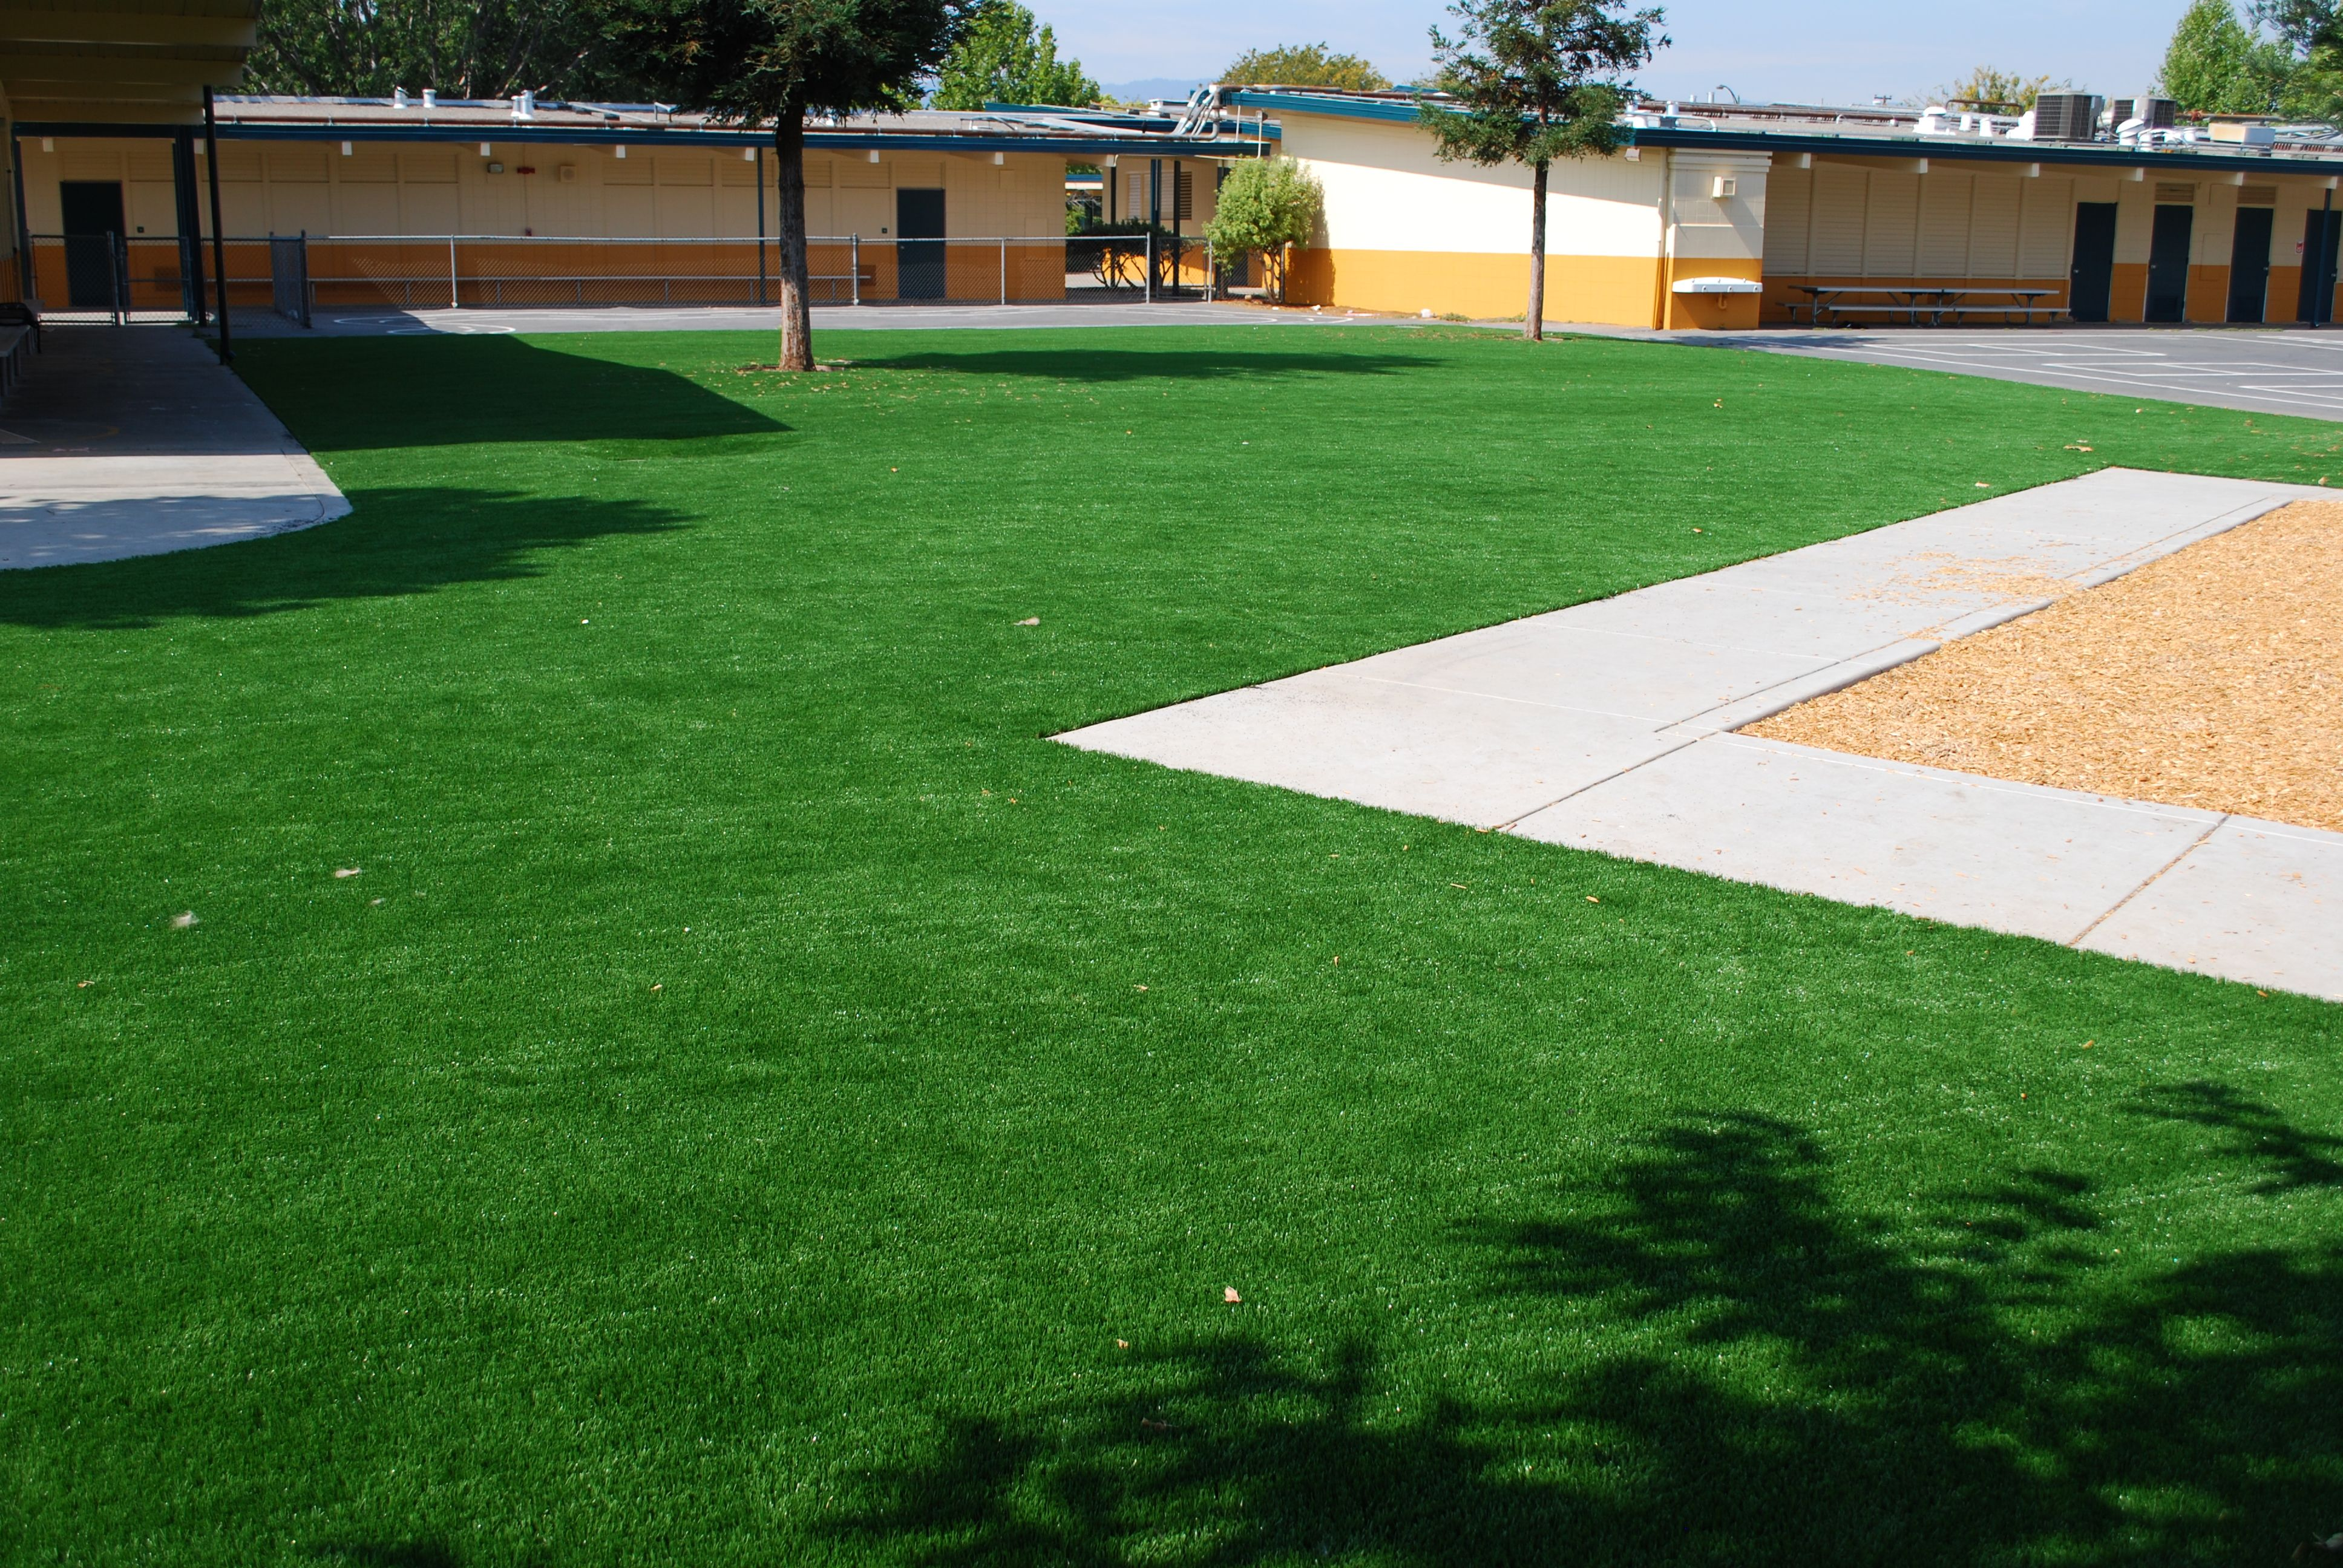 How does artificial turf impact the environment with